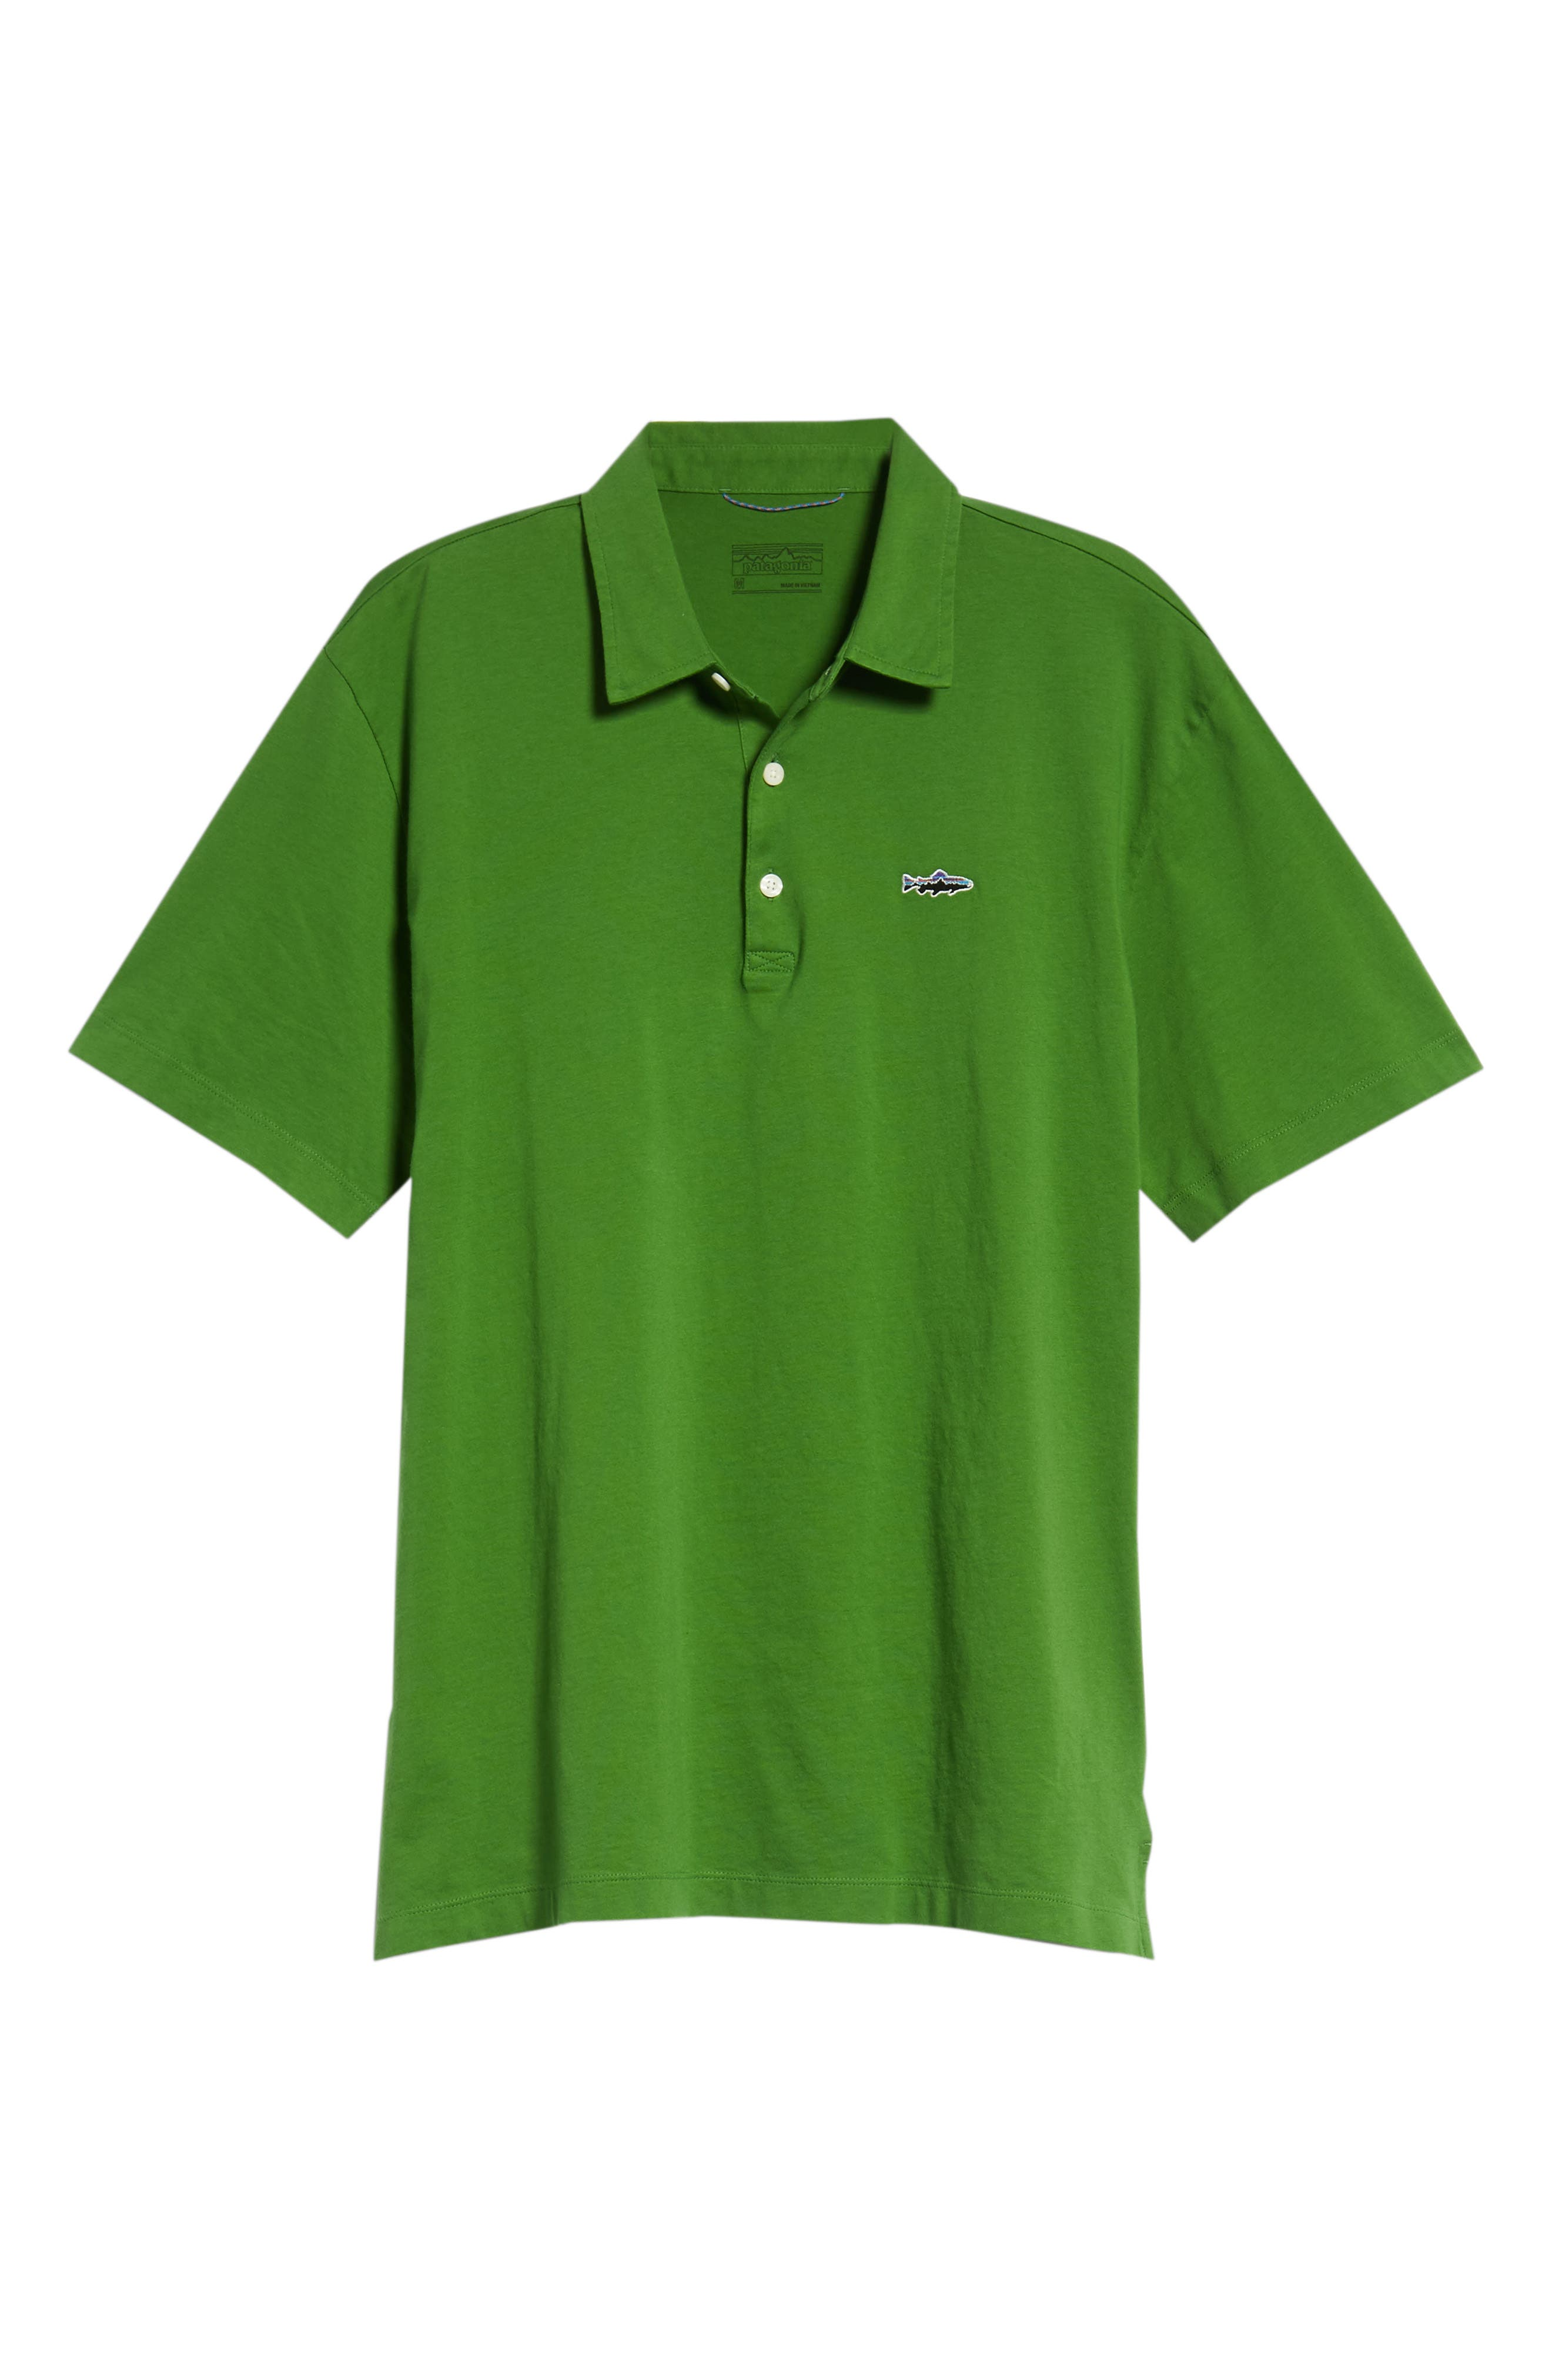 'Trout Fitz Roy' Organic Cotton Polo,                             Alternate thumbnail 6, color,                             MYRTLE GREEN